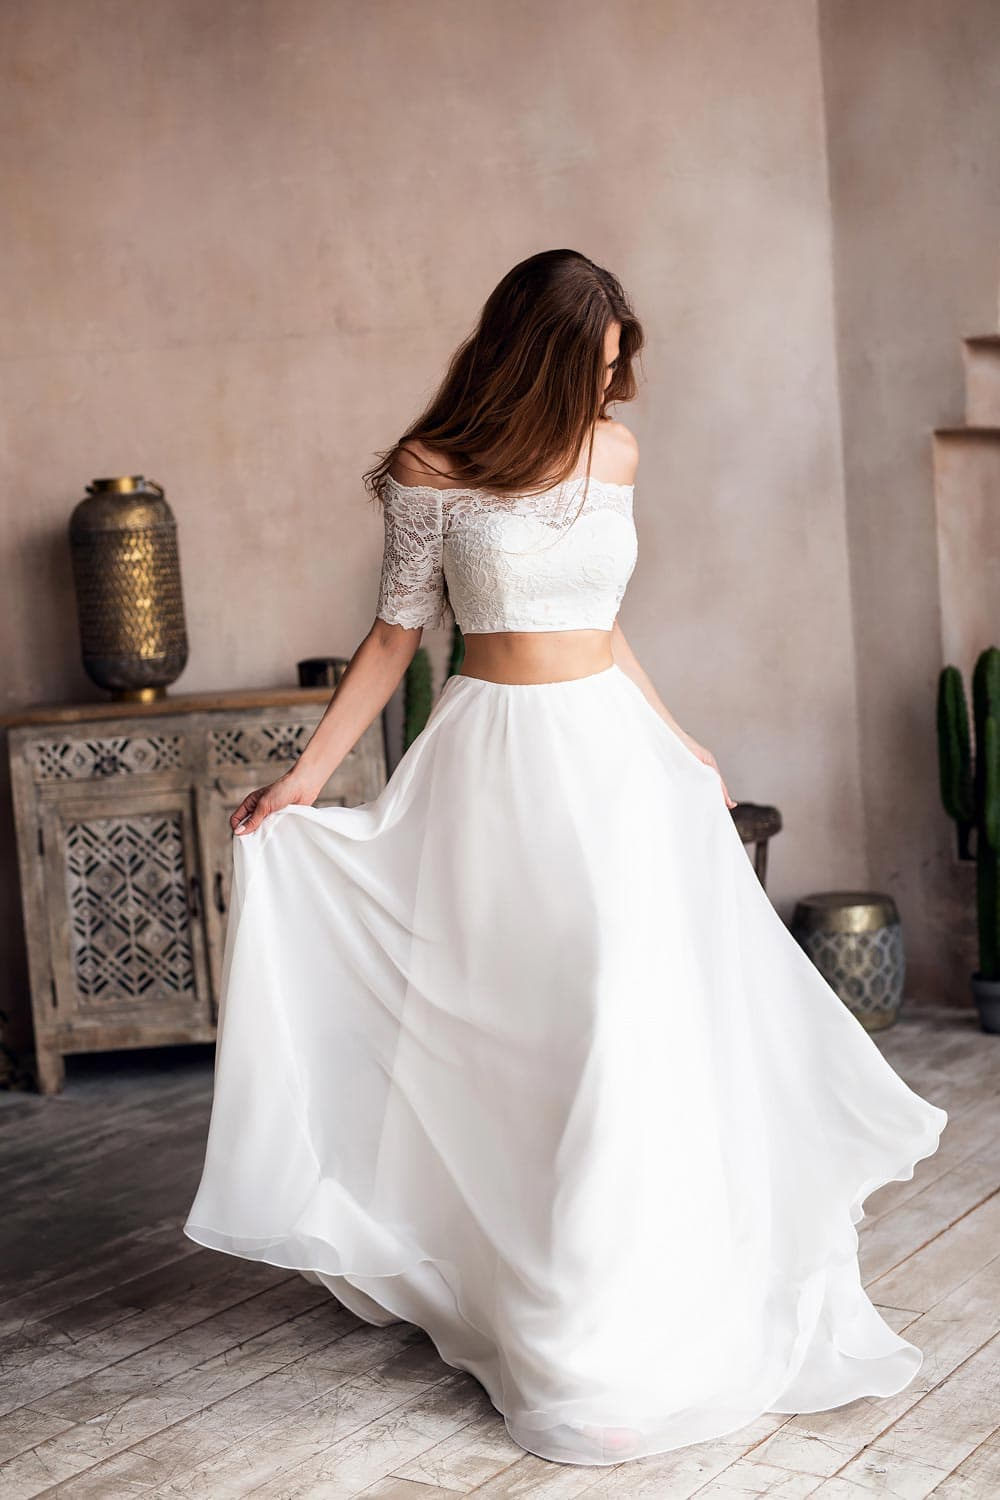 boho wedding dress wedding dress uk boho wedding dress wedding dress shops near me 103